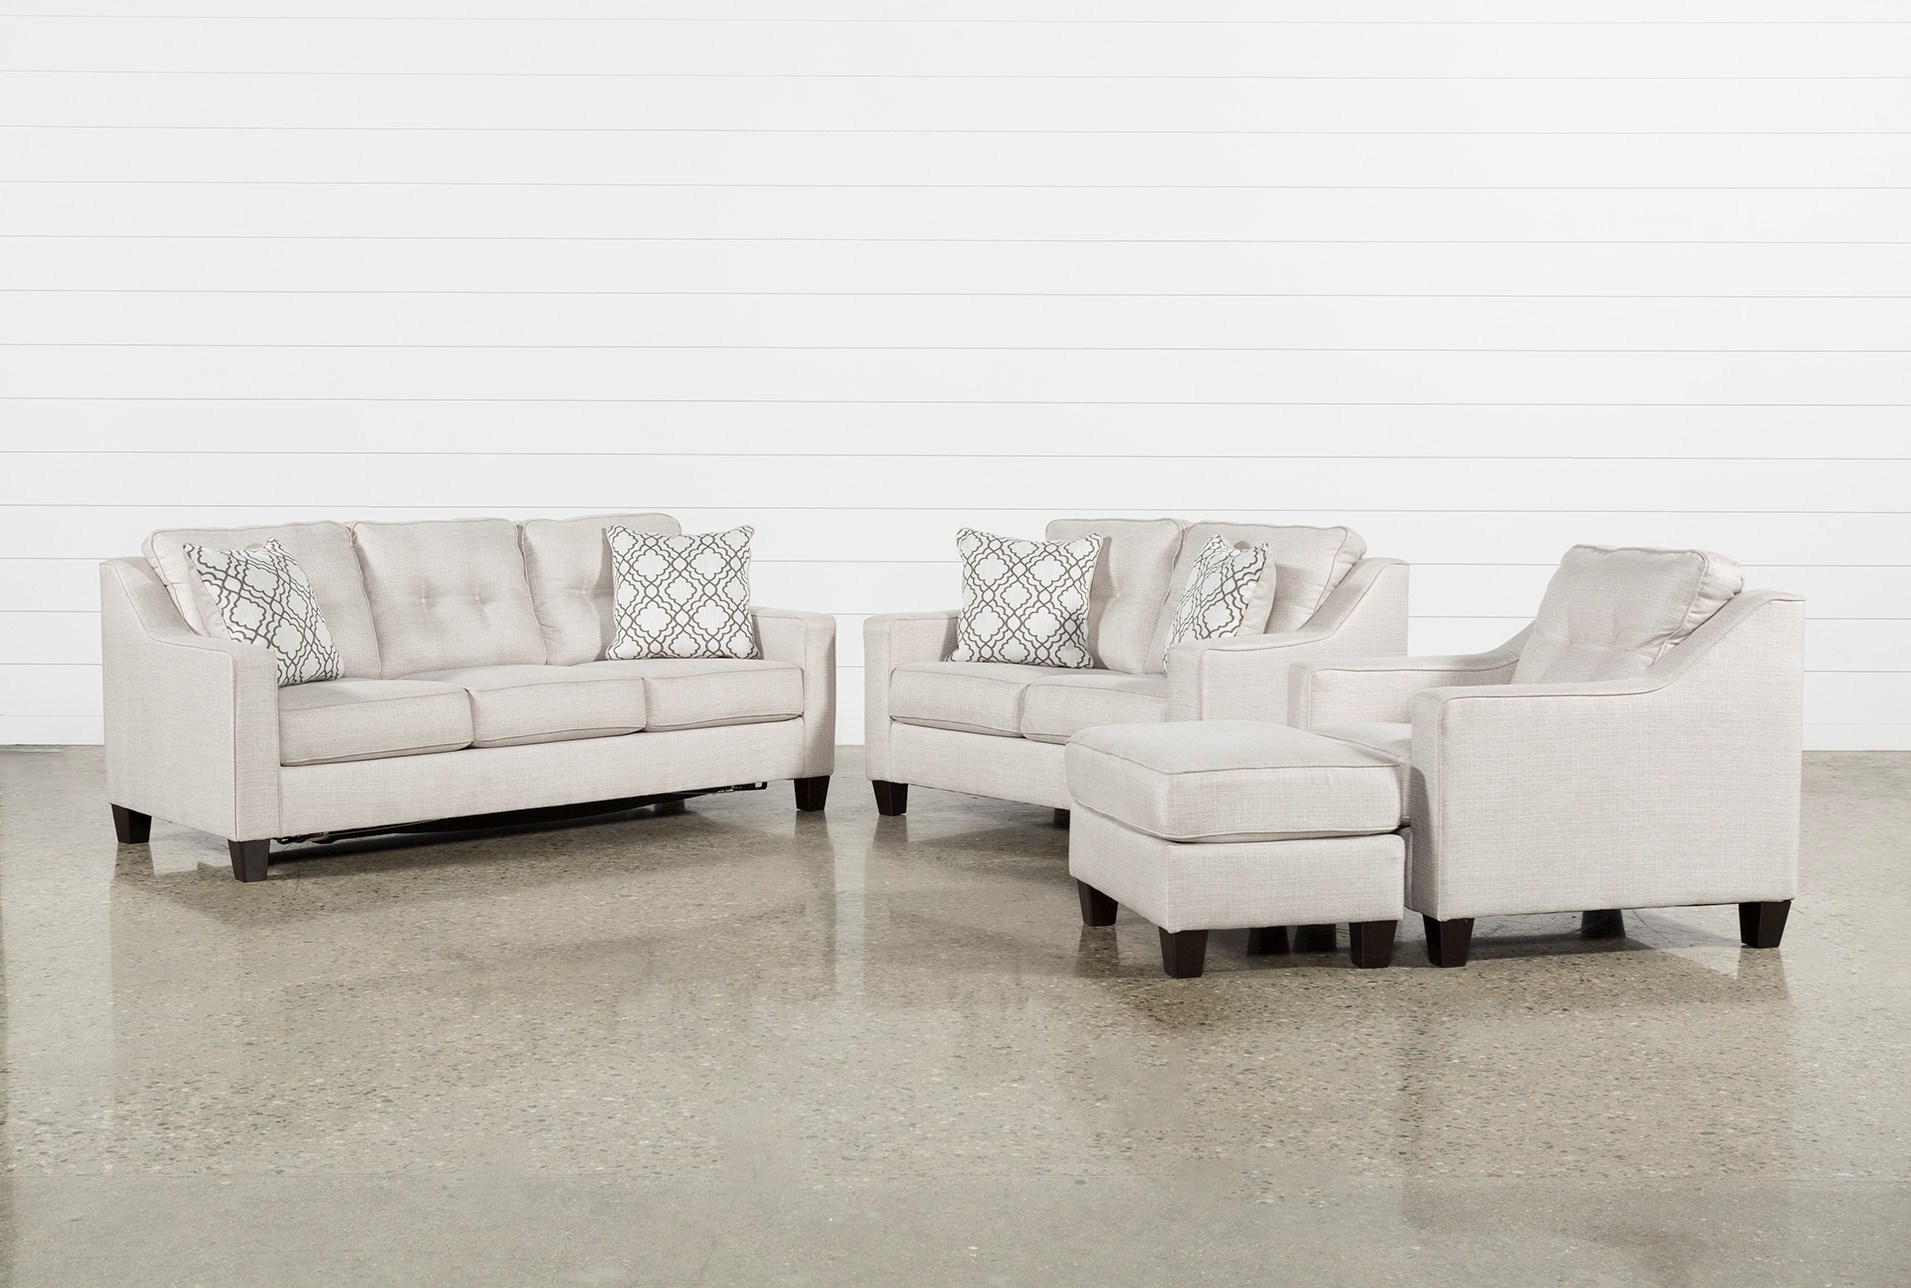 4 piece living room set cheap linday park piece living room set with queen sleeper sets spaces